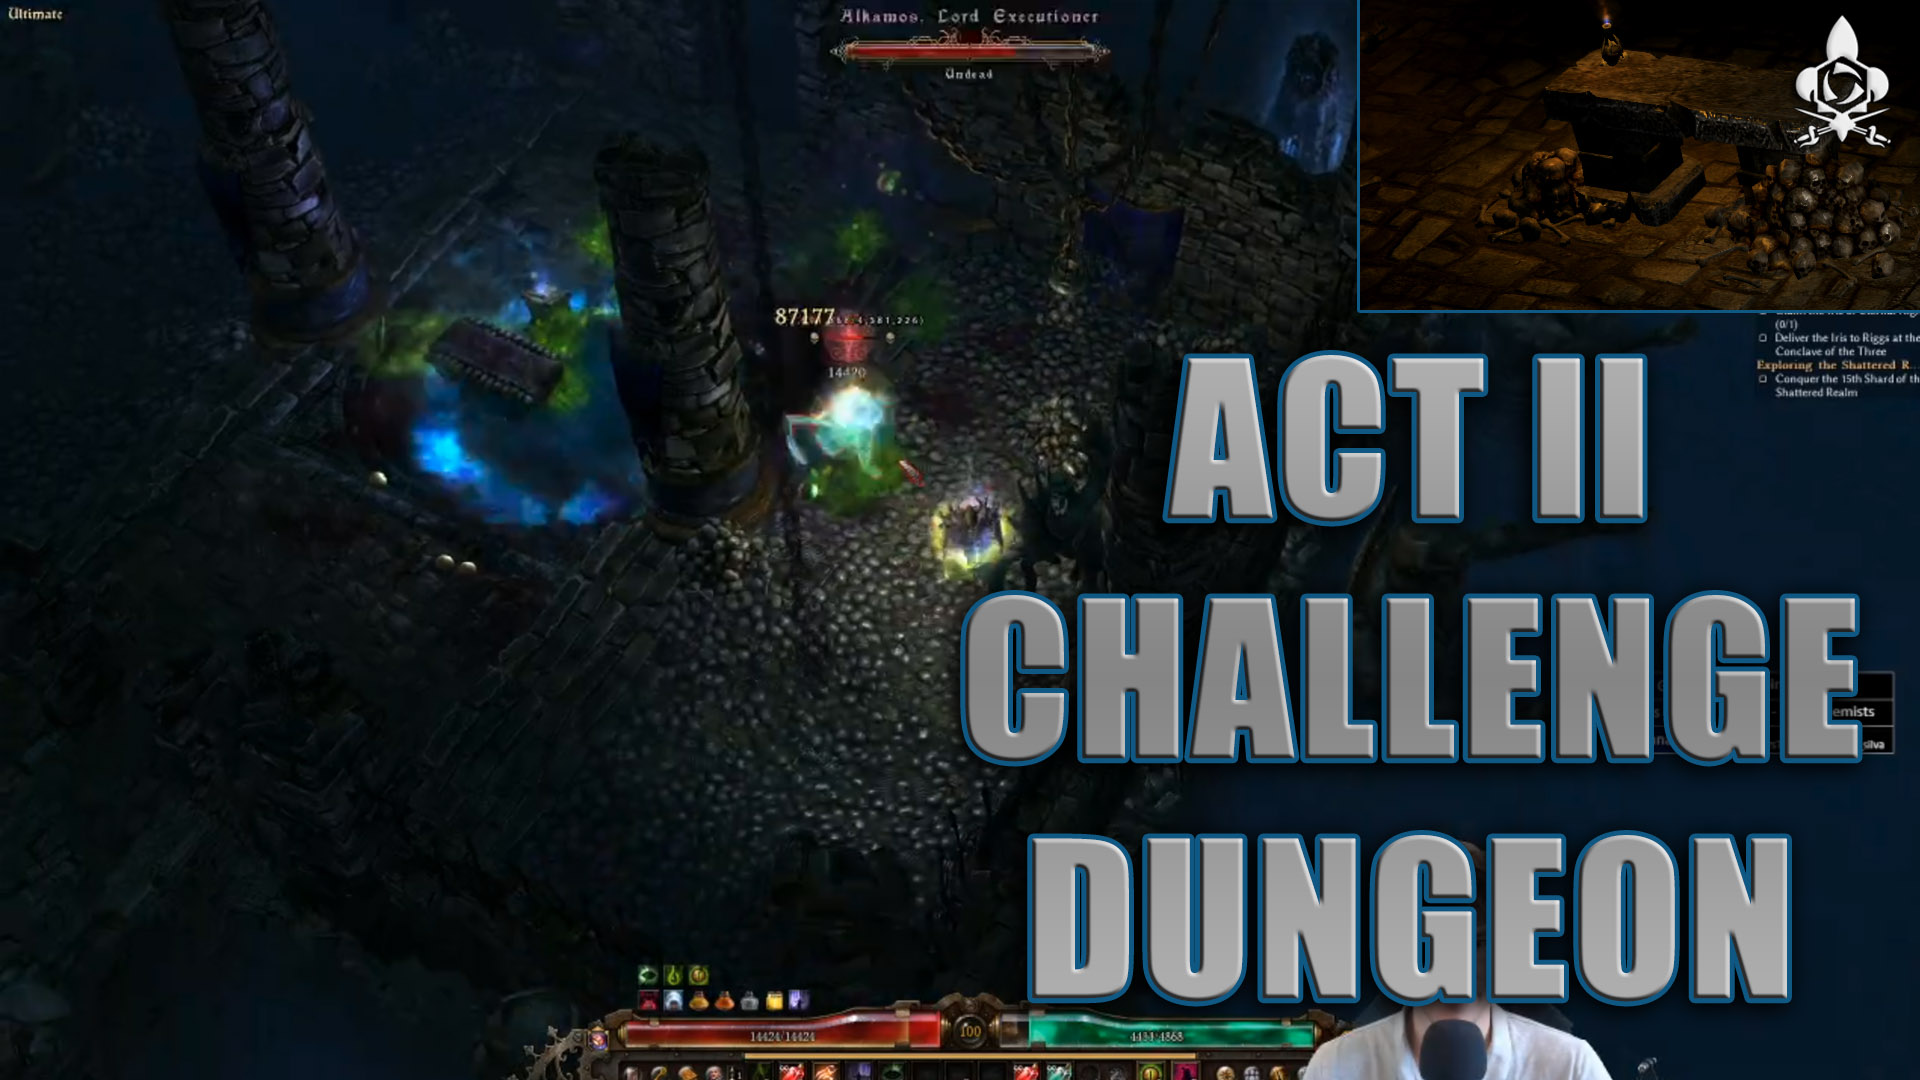 act II dungeon challenge